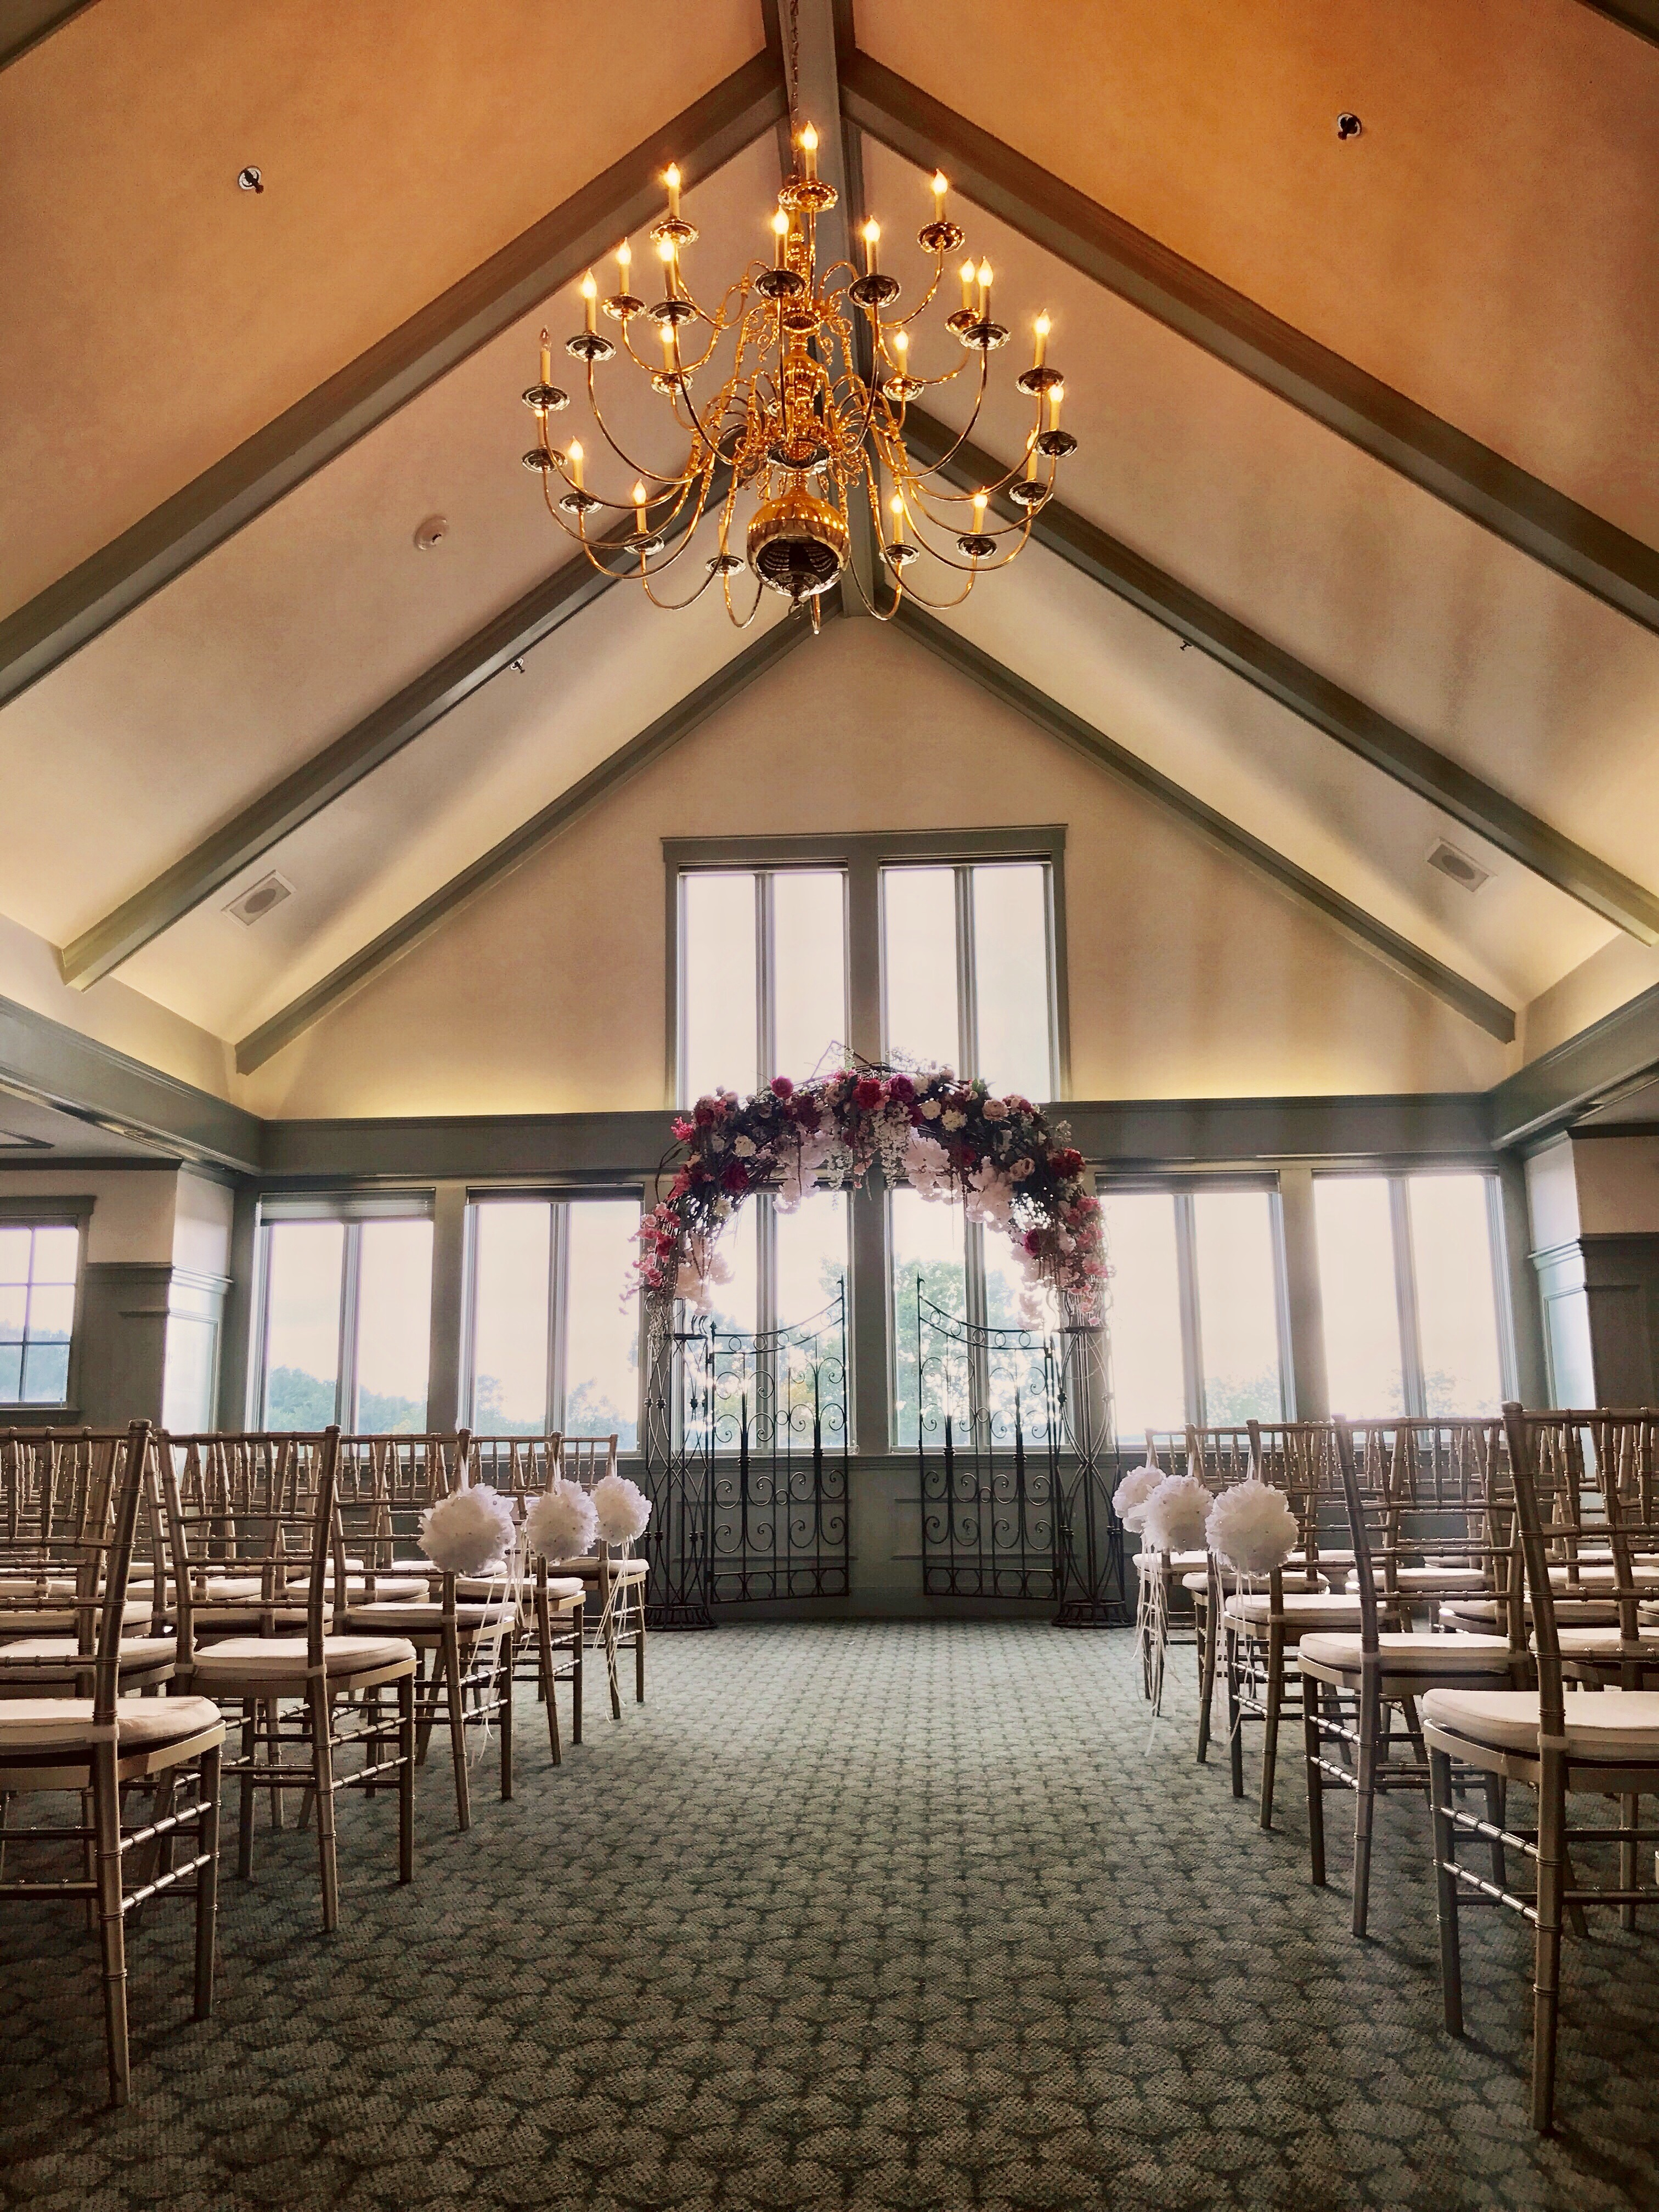 Our Club Has Many Diffe Options And Rooms To Host Your Event Ballroom Can Accommodate Up 200 People We Have A Large Deck Overlooking